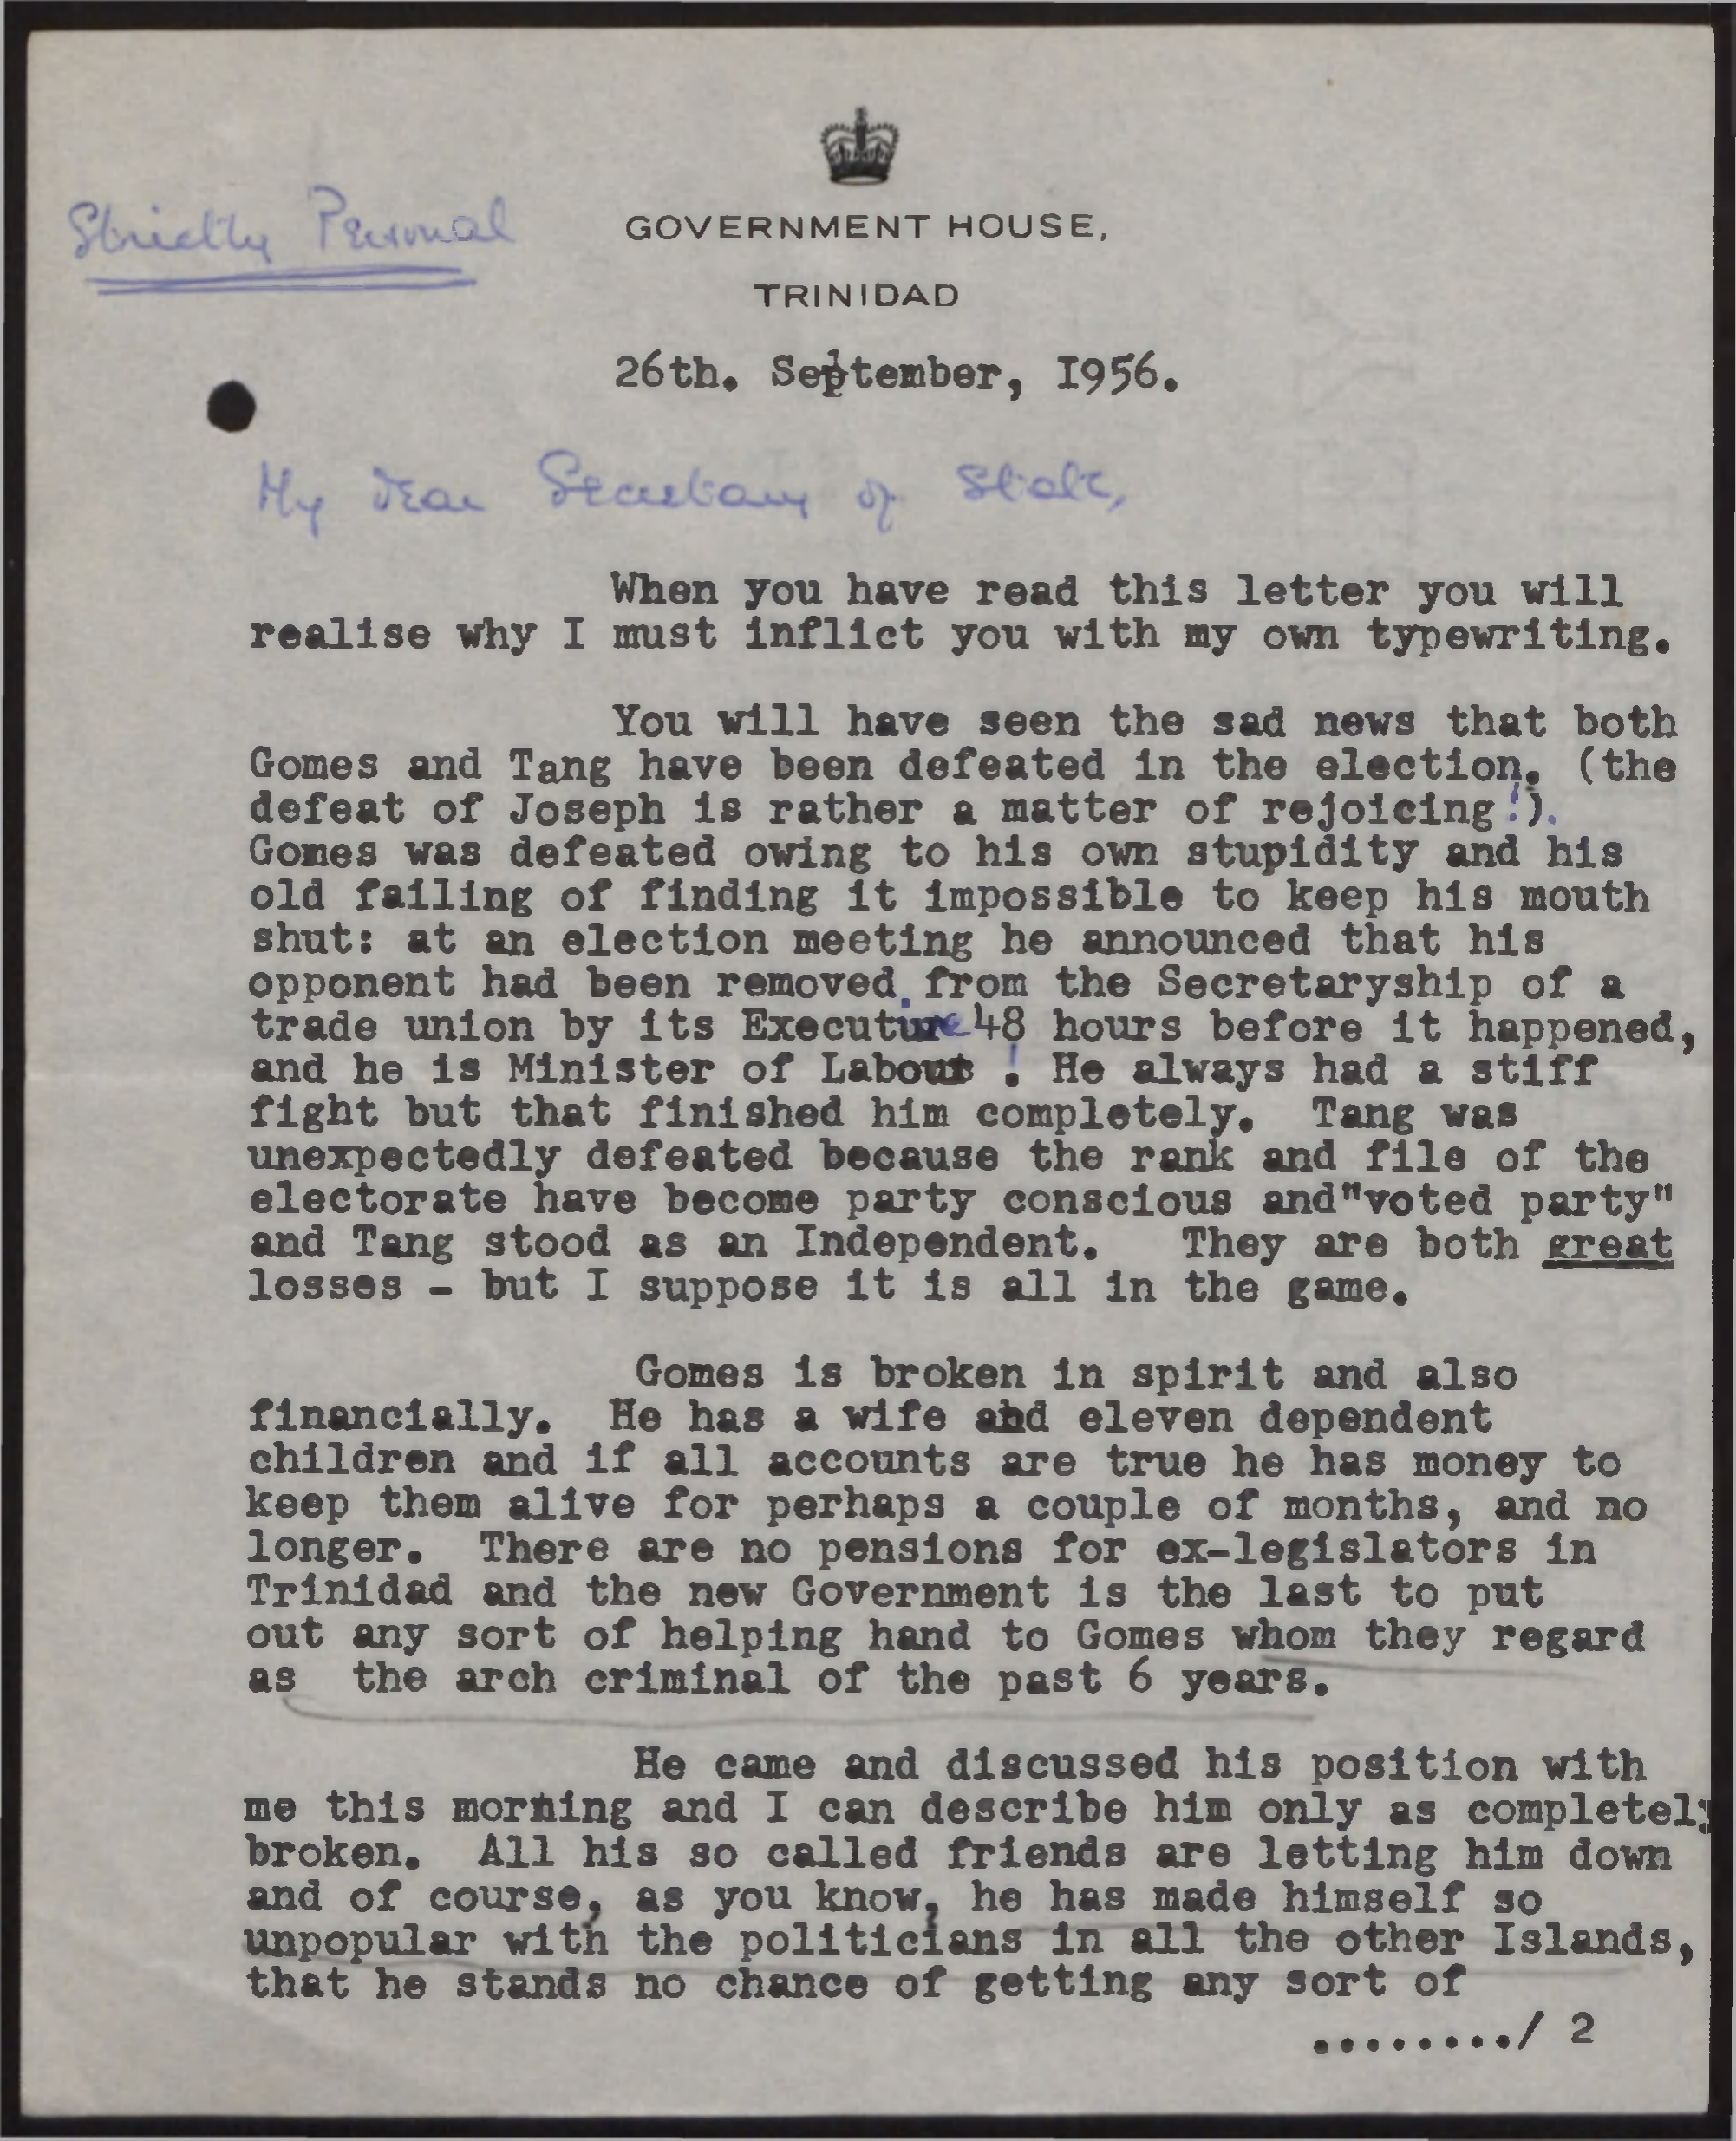 Letter from Edward Beetham to Secretary of State re: Albert